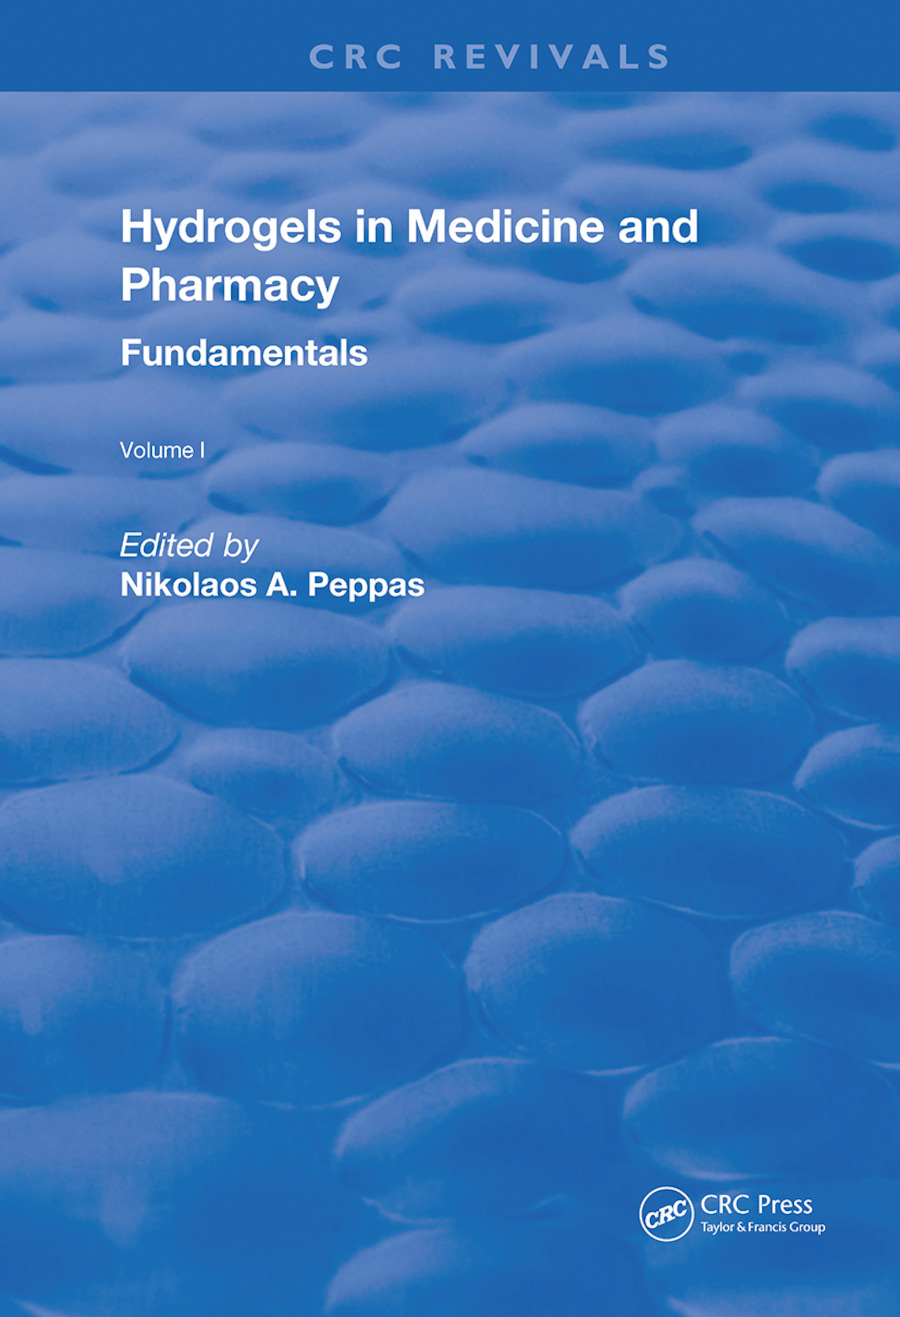 Hydrogels in Medicine and Pharmacy: Fundamentals book cover